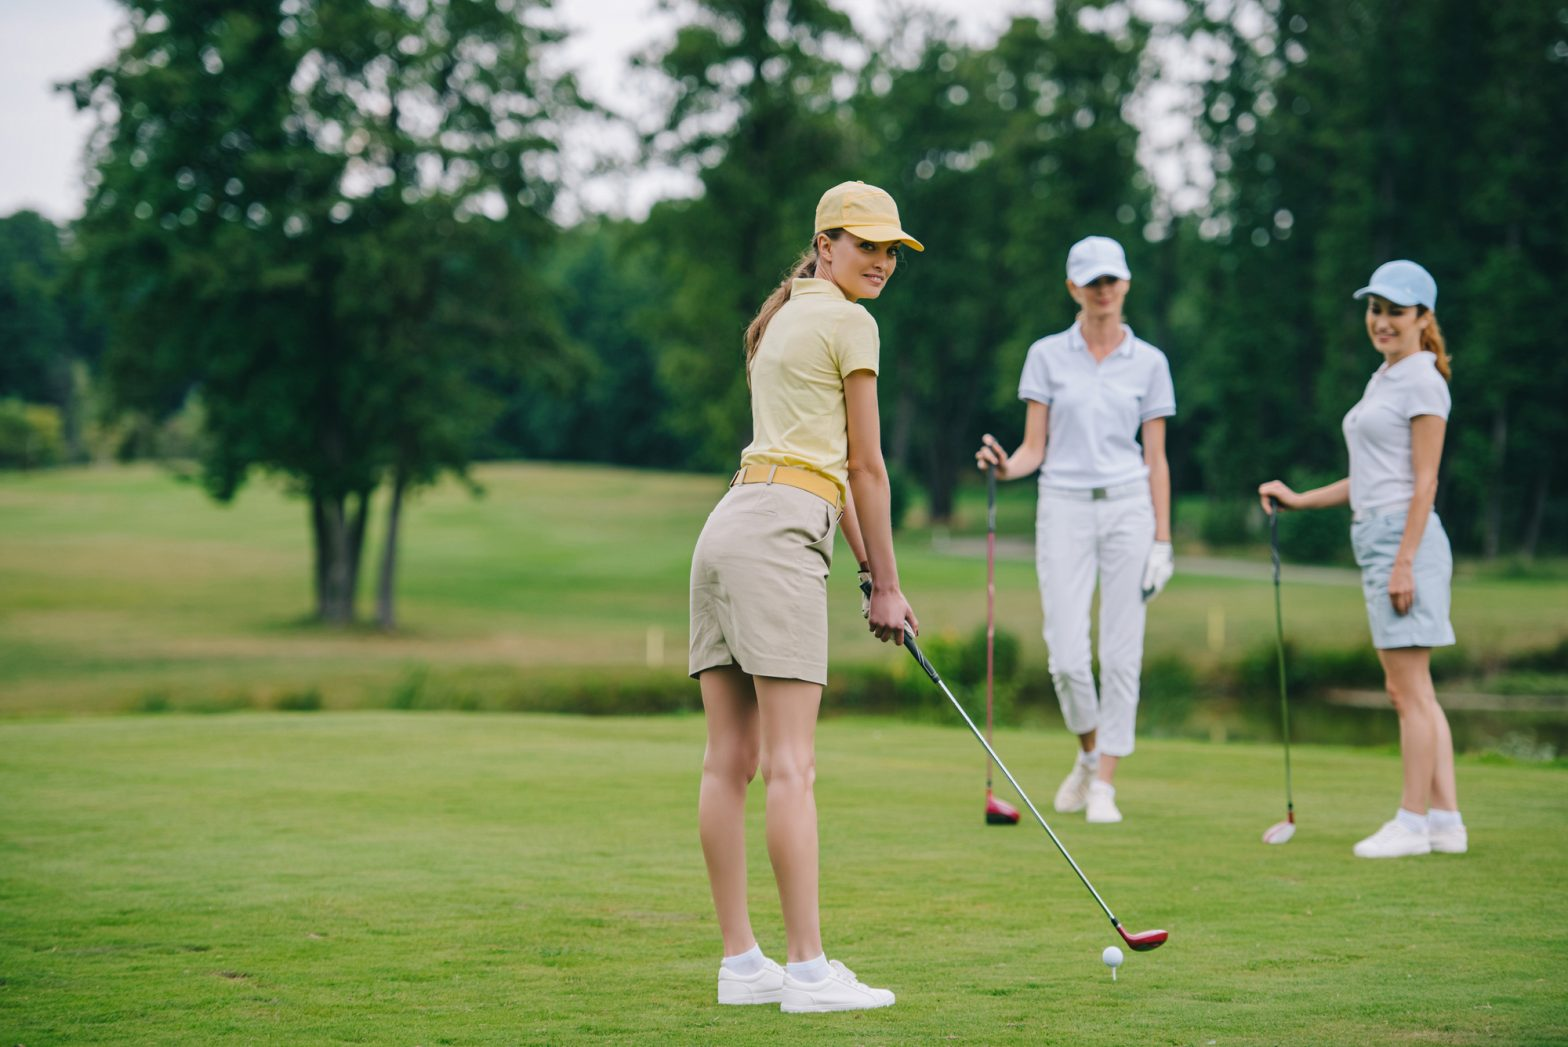 5 Health Benefits of Playing Golf